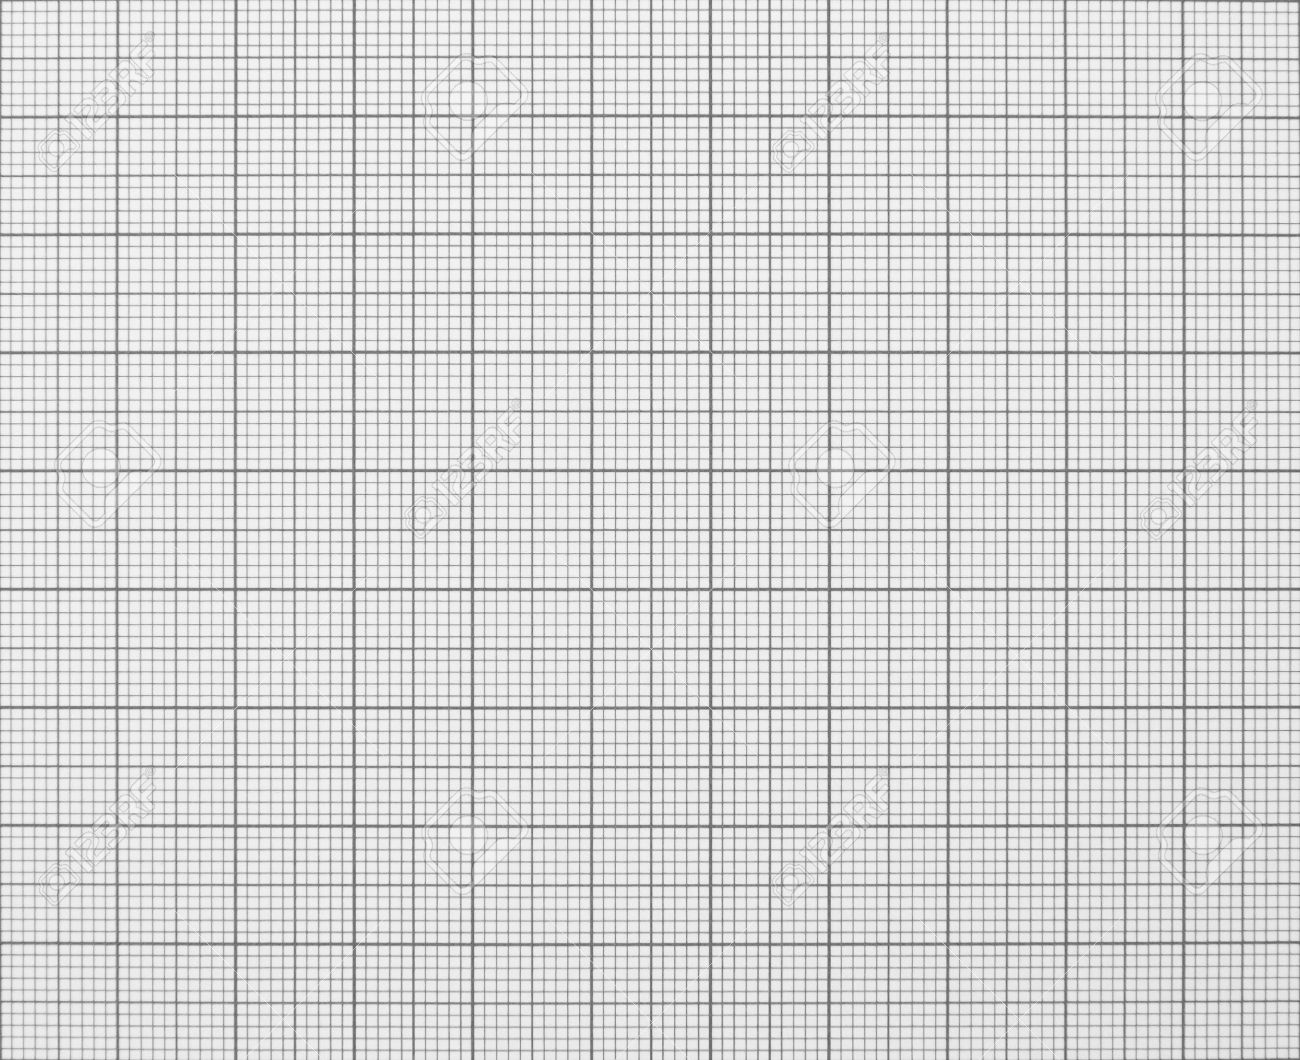 Squared Graph Grid Paper Texture Black And White Stock Photo ...